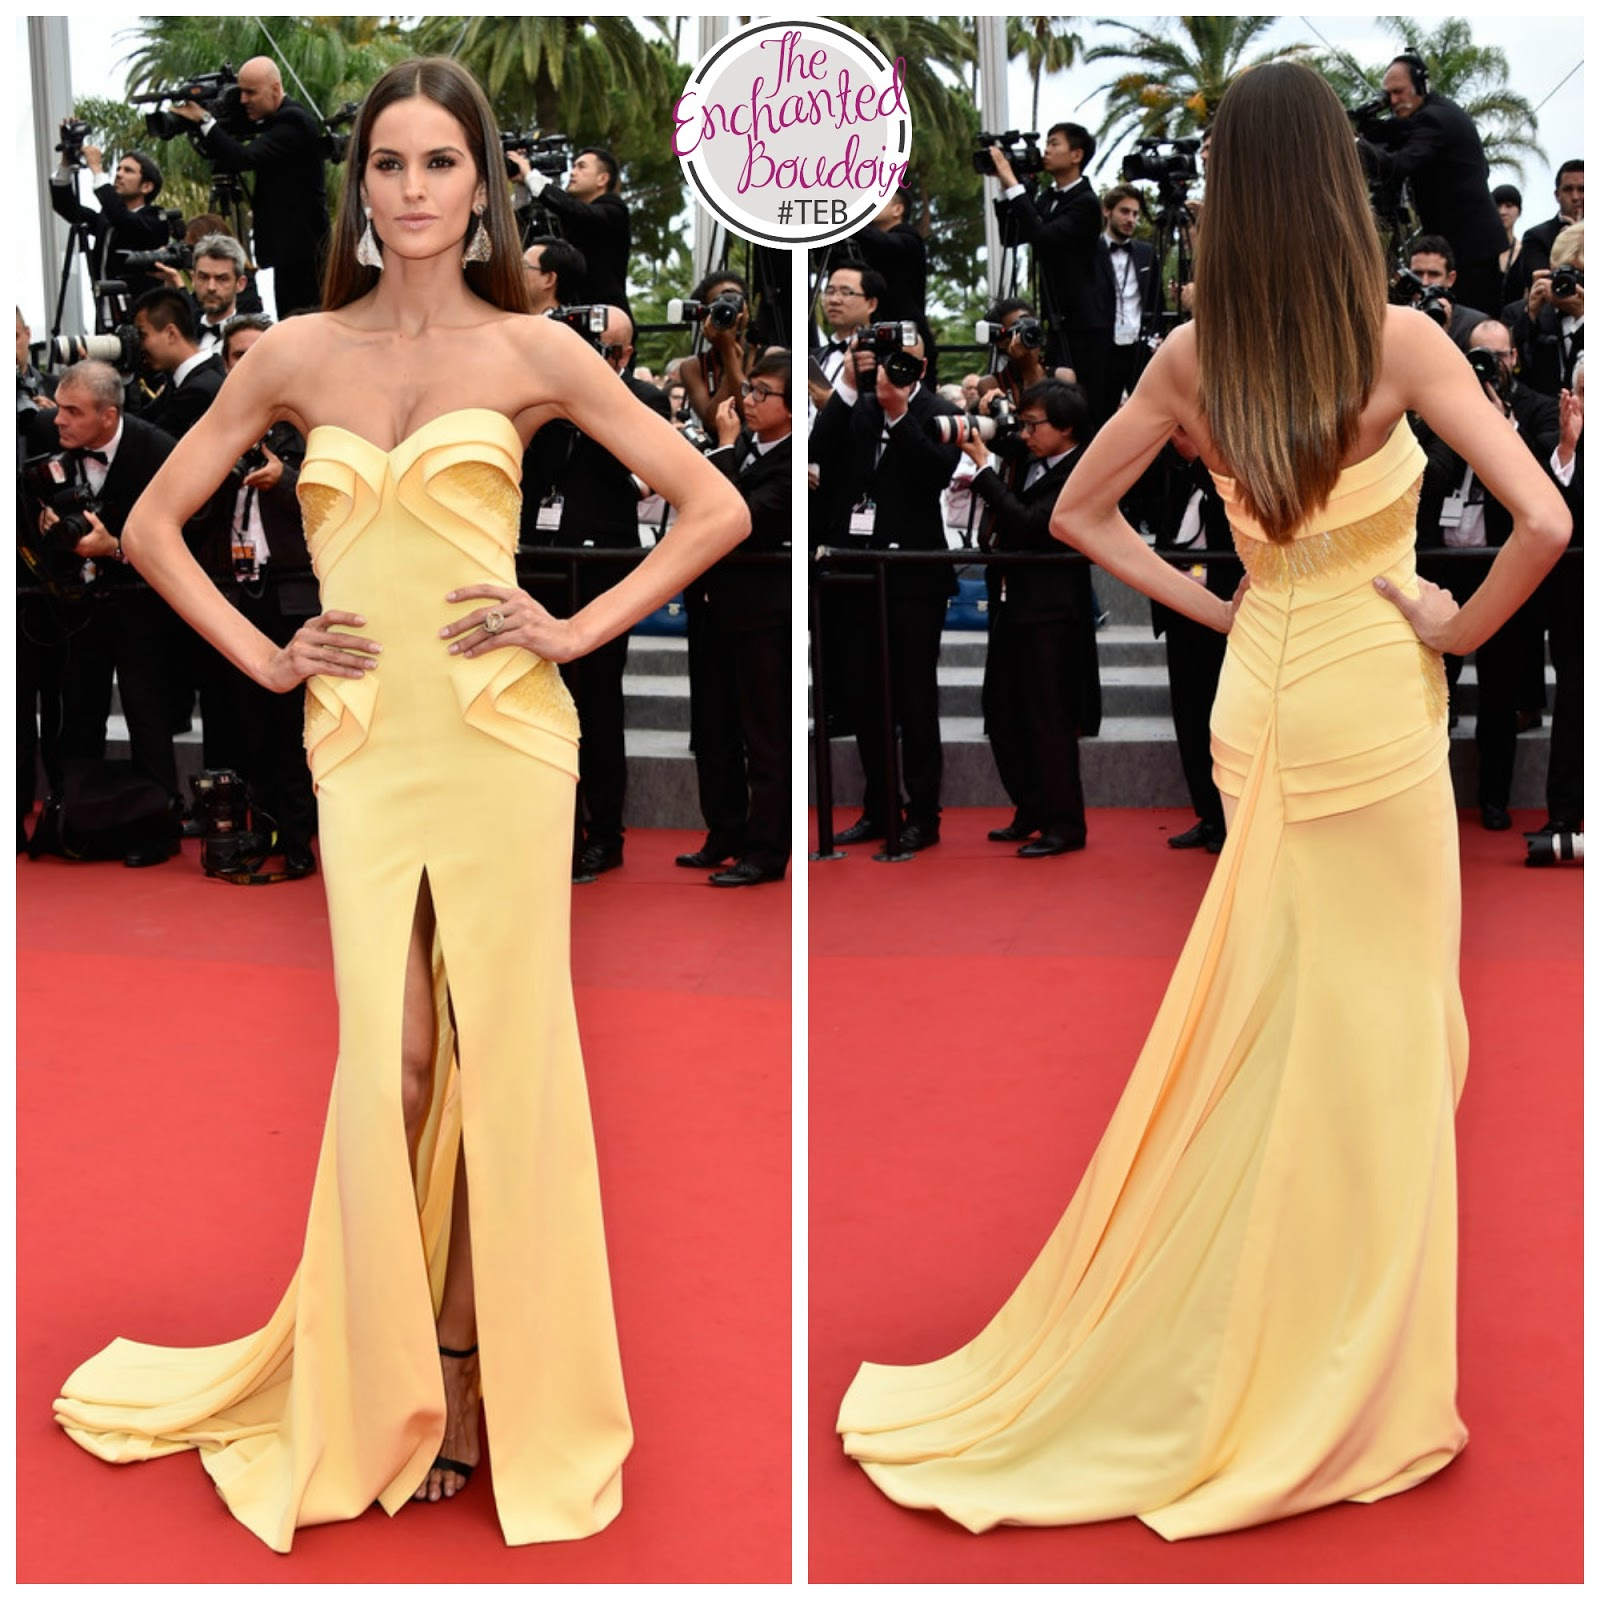 Models Cannes Festival Red Carpet